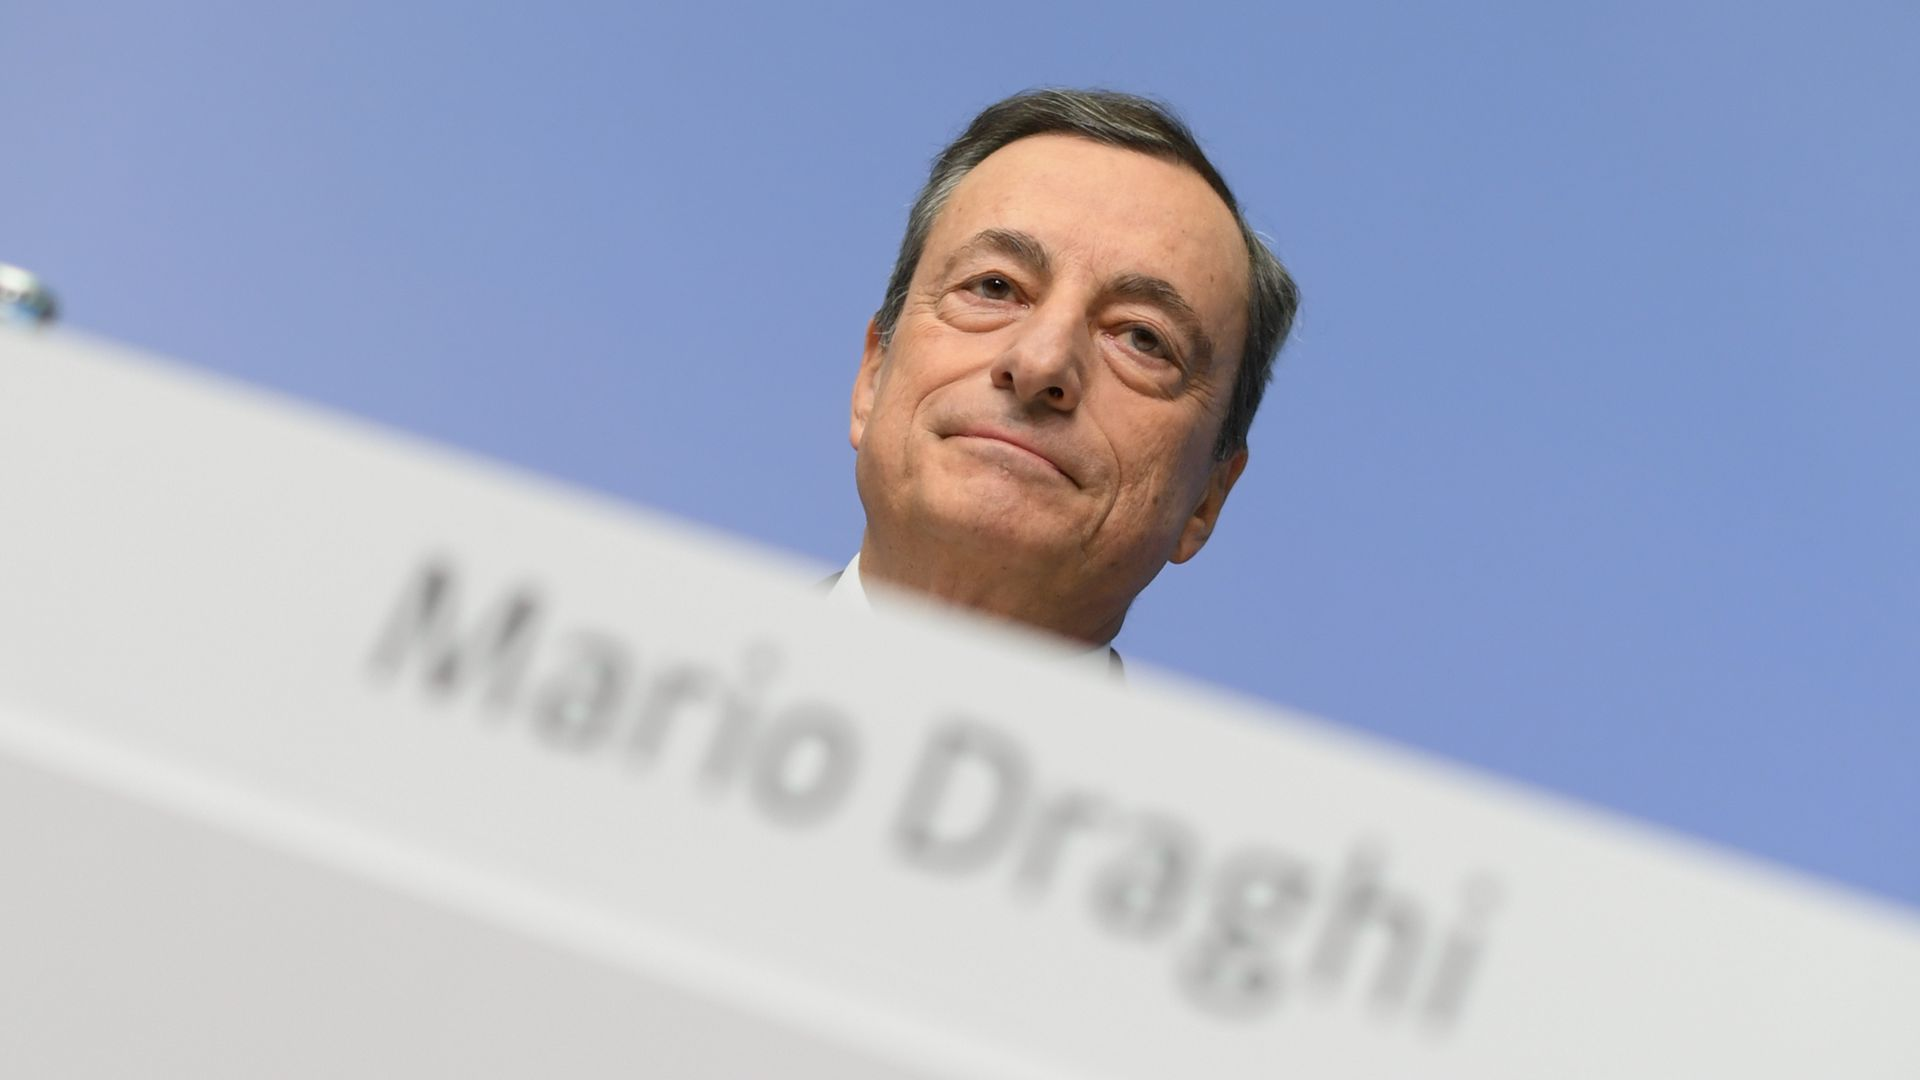 Mario Draghi, the director of the European Central Bank (ECB), at a press conference in the bank's headquarters in Frankfurt, Germany, 26 October 2017.